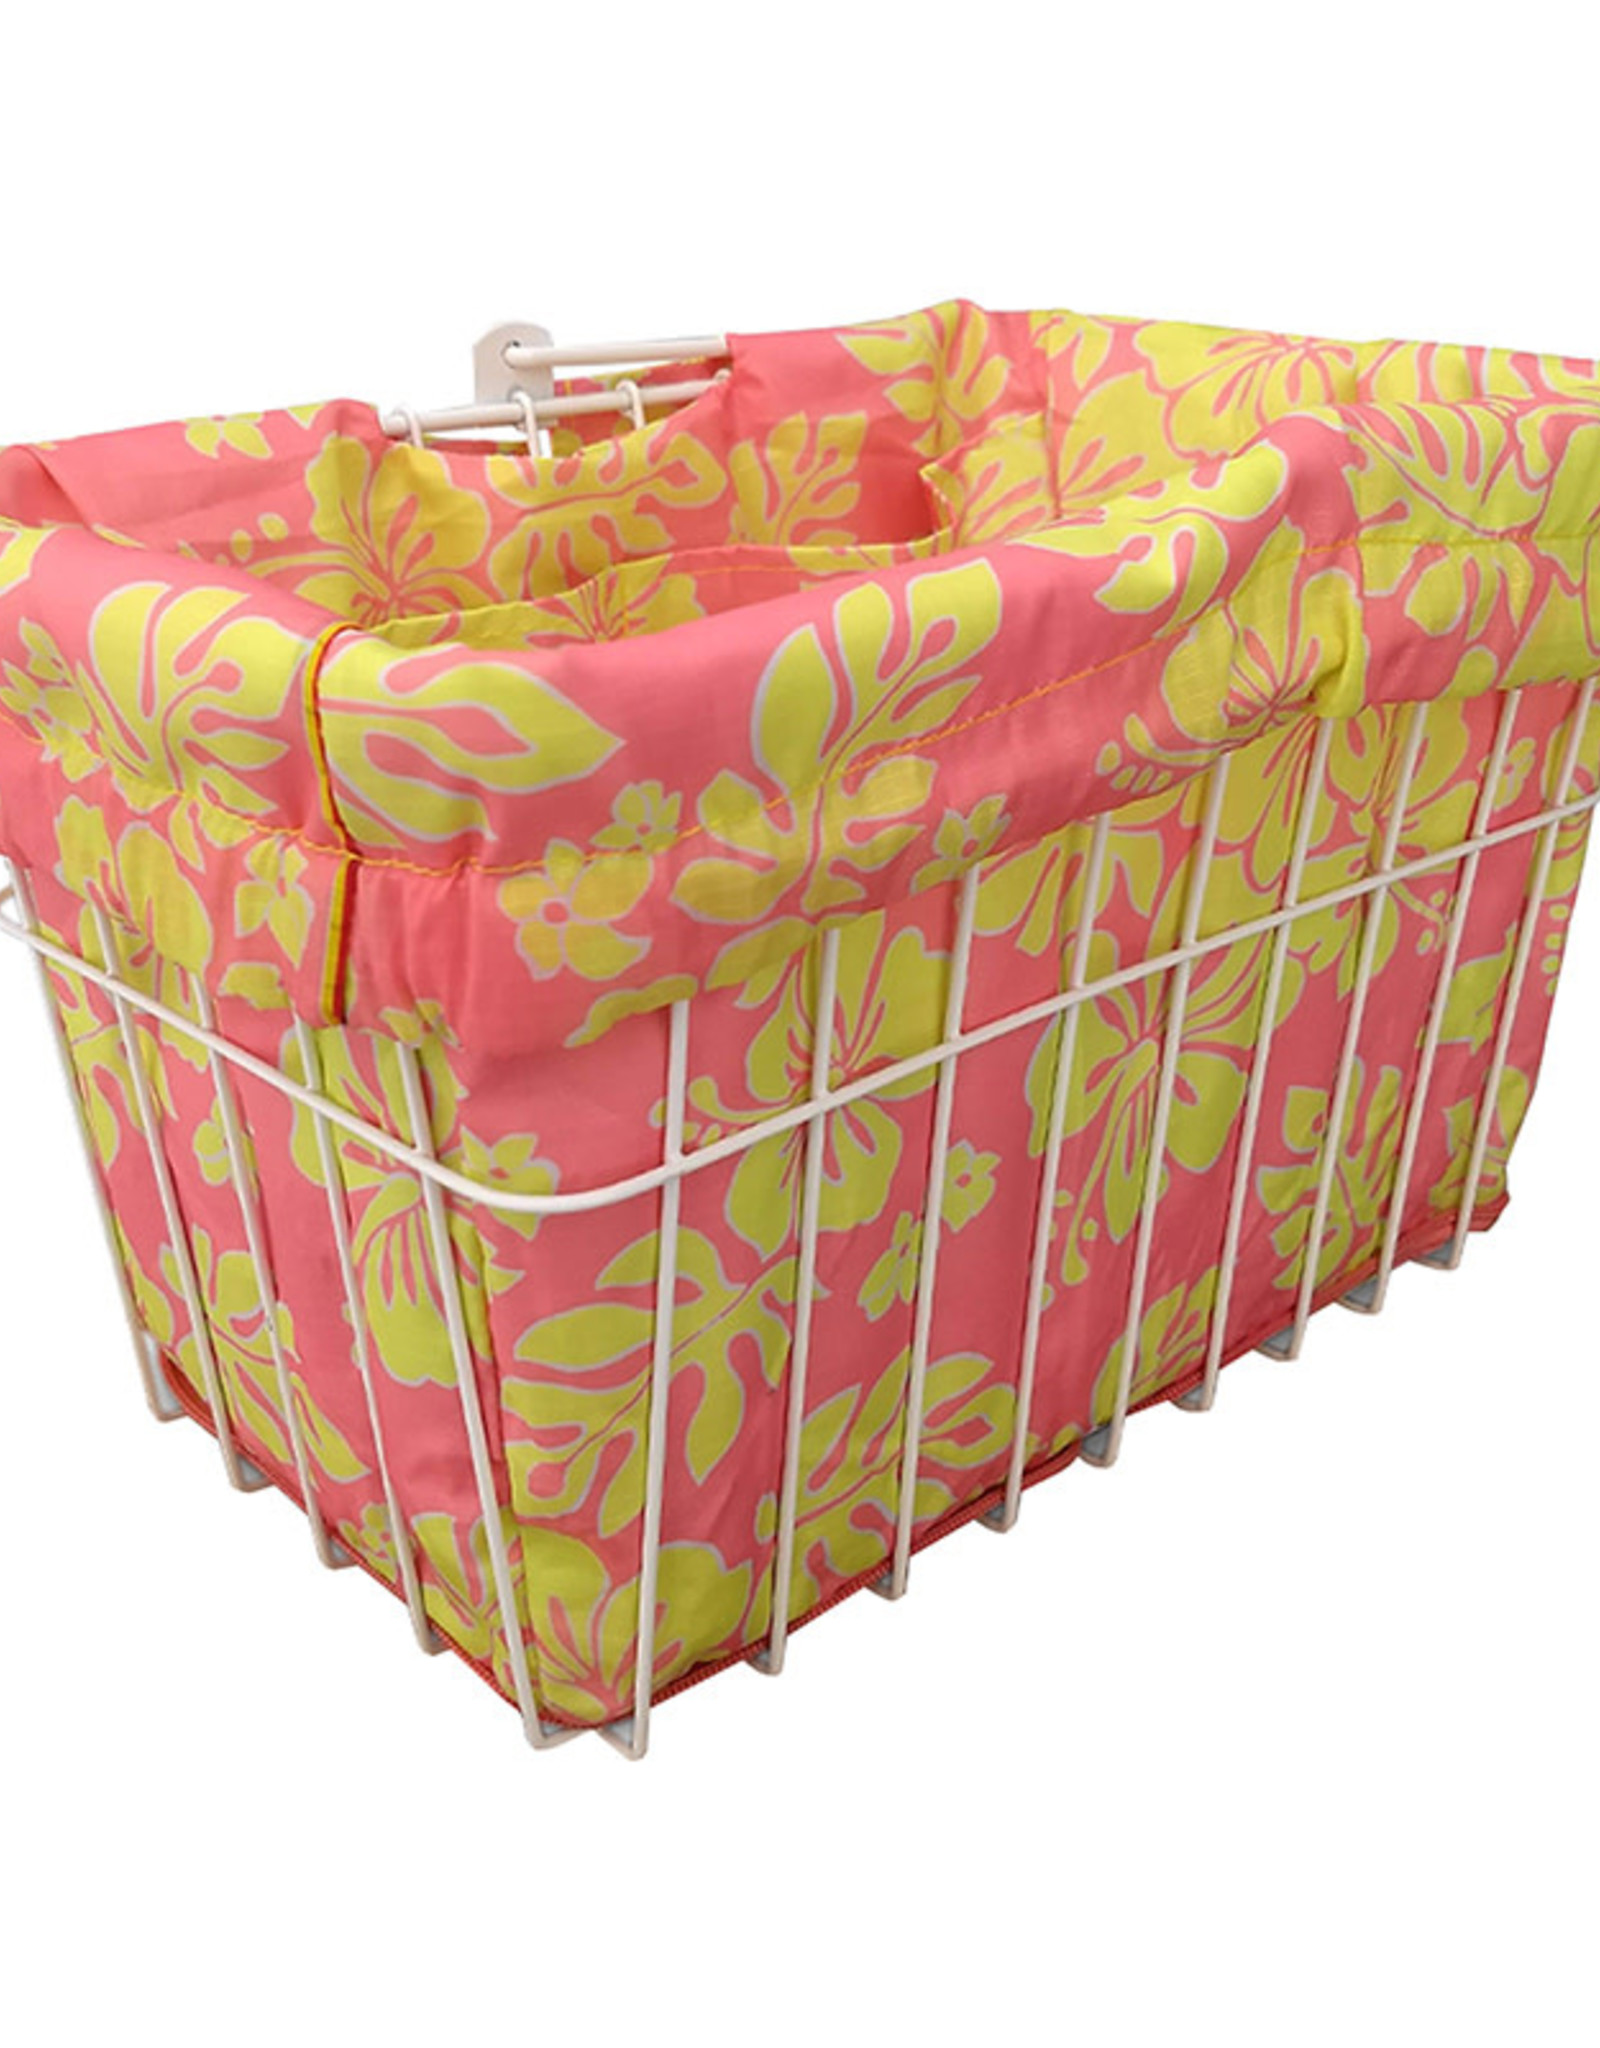 CRUISER CANDY Reversible Bike Basket Liner,  Standard, Hibiscus Pink & Yellow